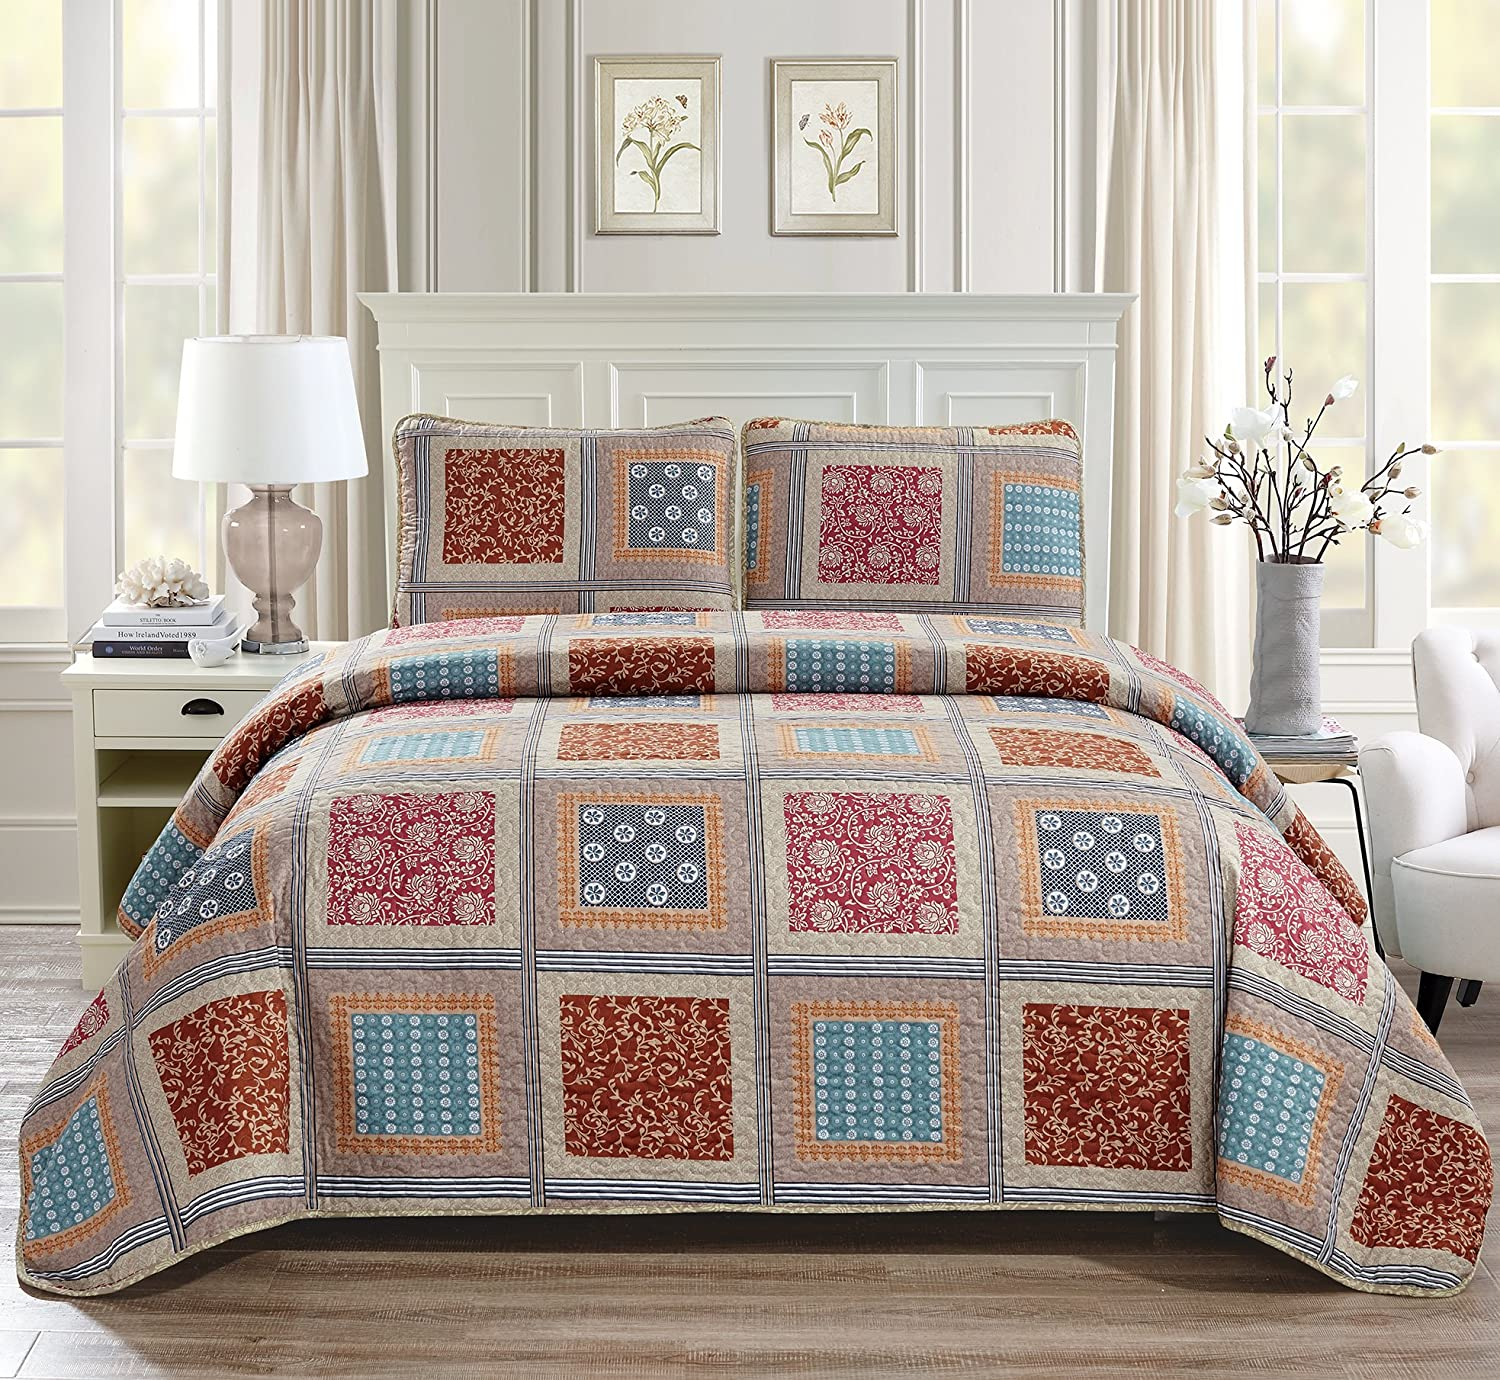 Linen Plus Twin/Twin Extra Long 2pc Quilted Bedspread Set Oversized Coverlet Floral Squares Beige Taupe Red Blue New